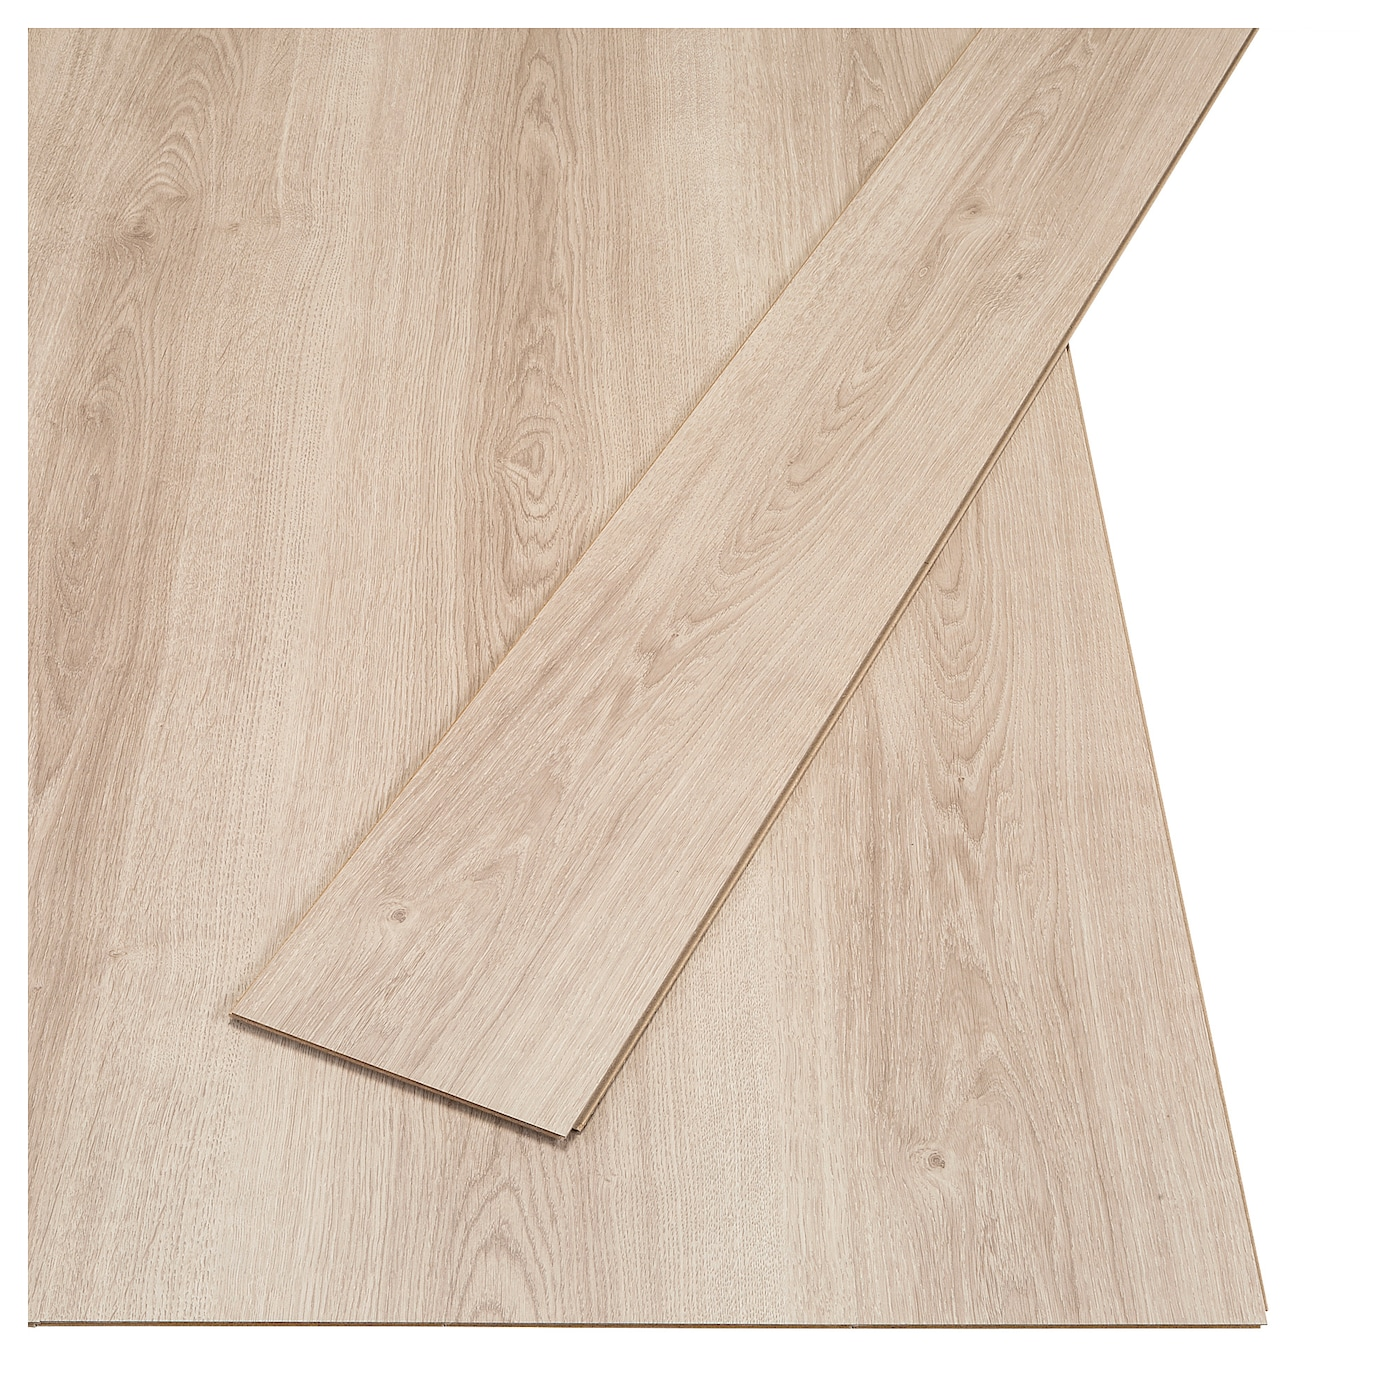 TUNDRA Laminated flooring - oak effect 4.45 m²